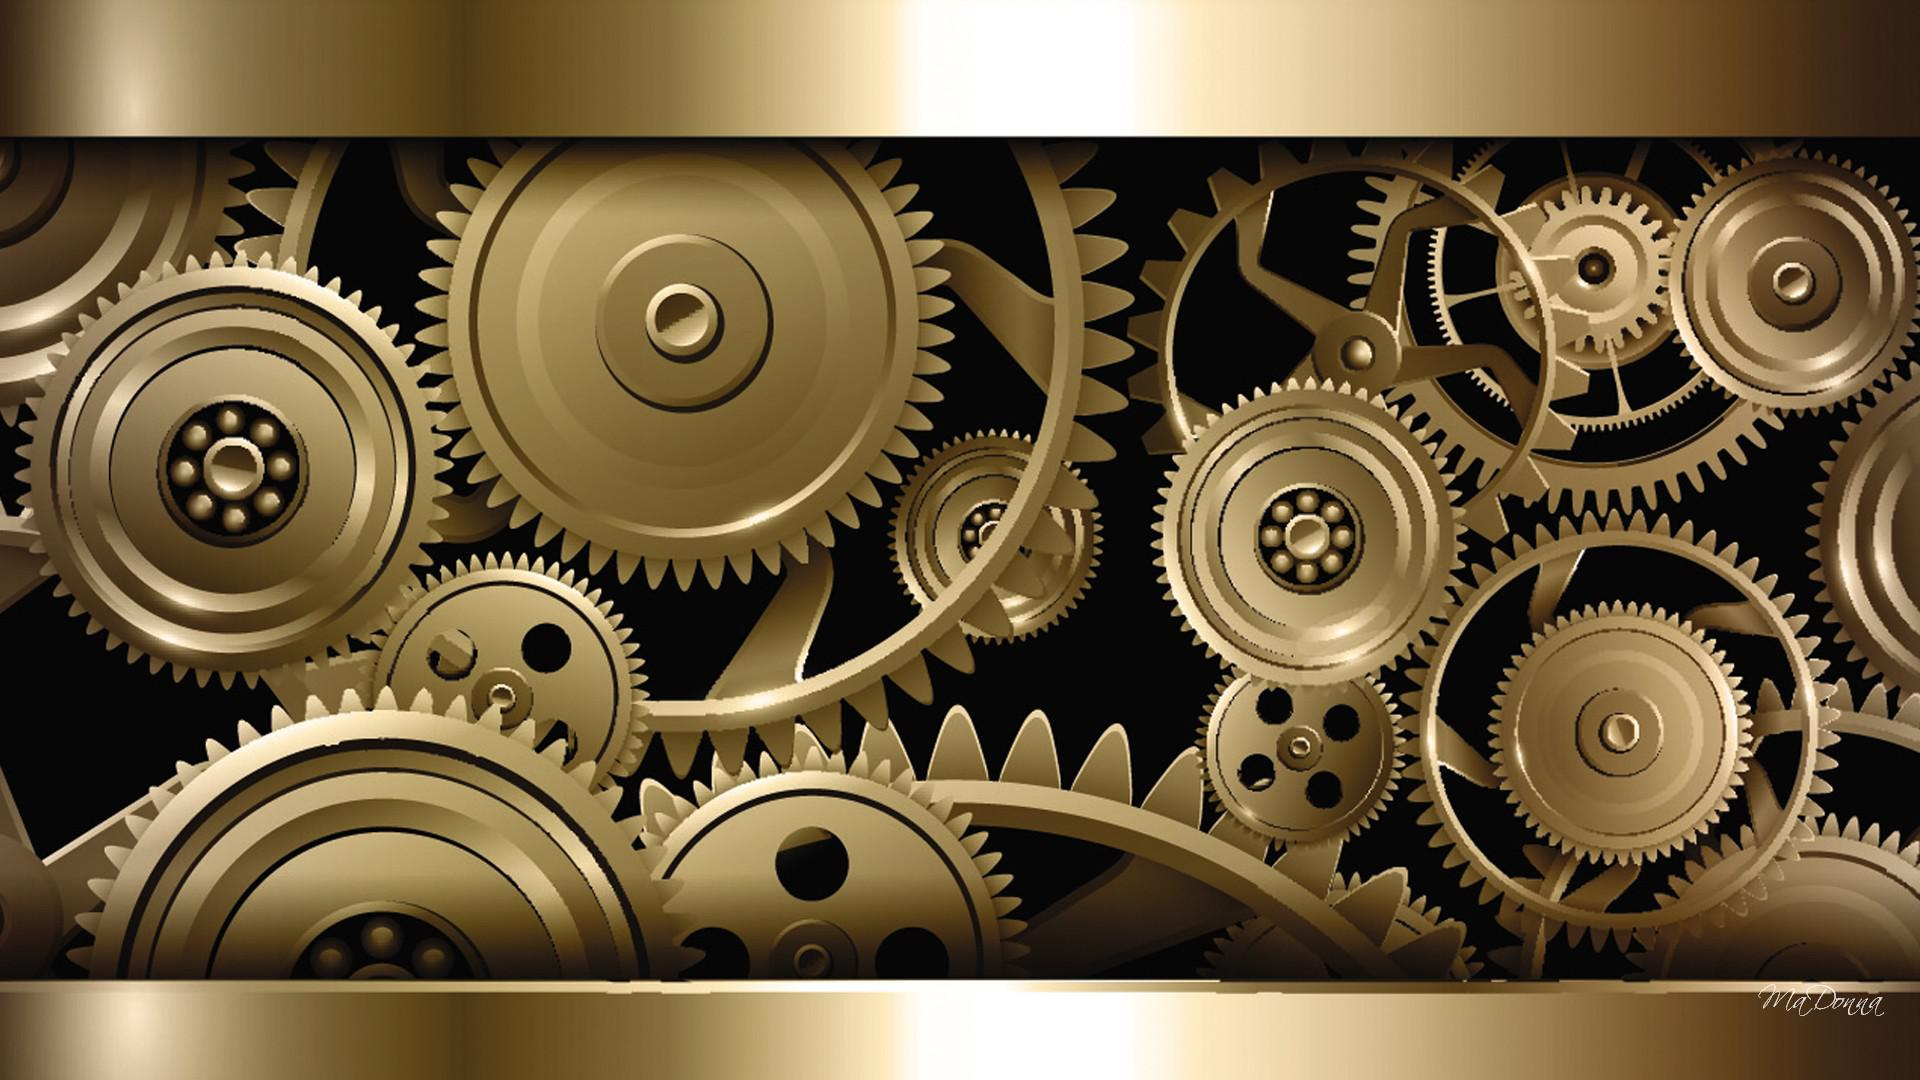 Steampunk Gears Wallpaper - WallpaperSafari